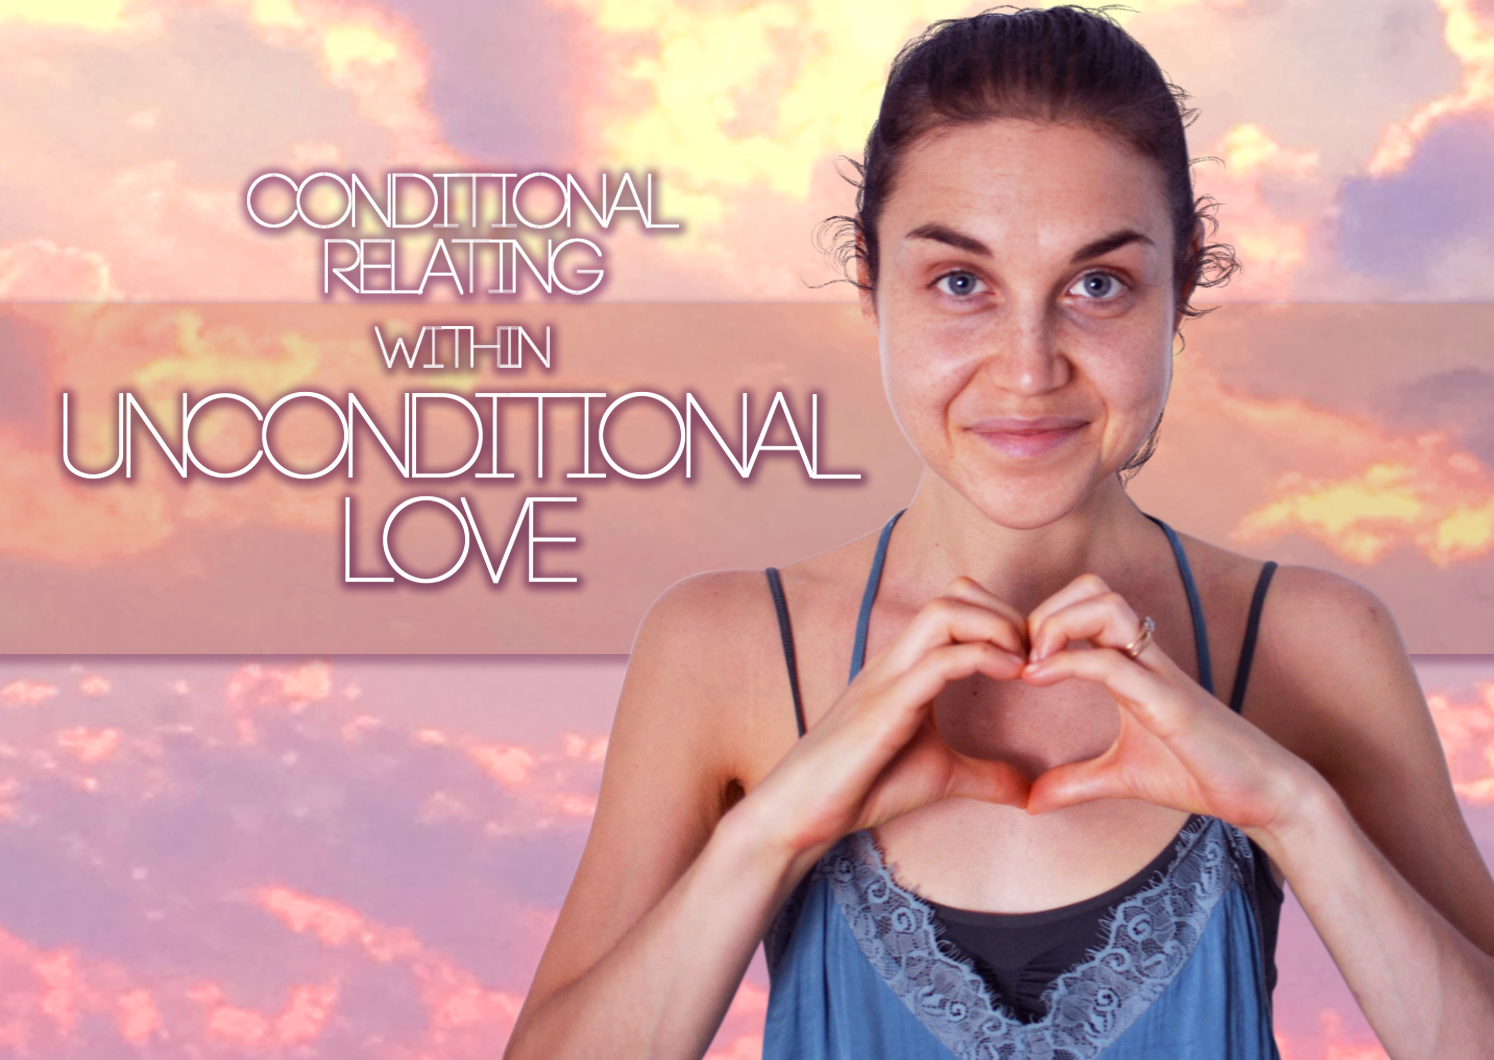 Conditional Relating Within Unconditional Love